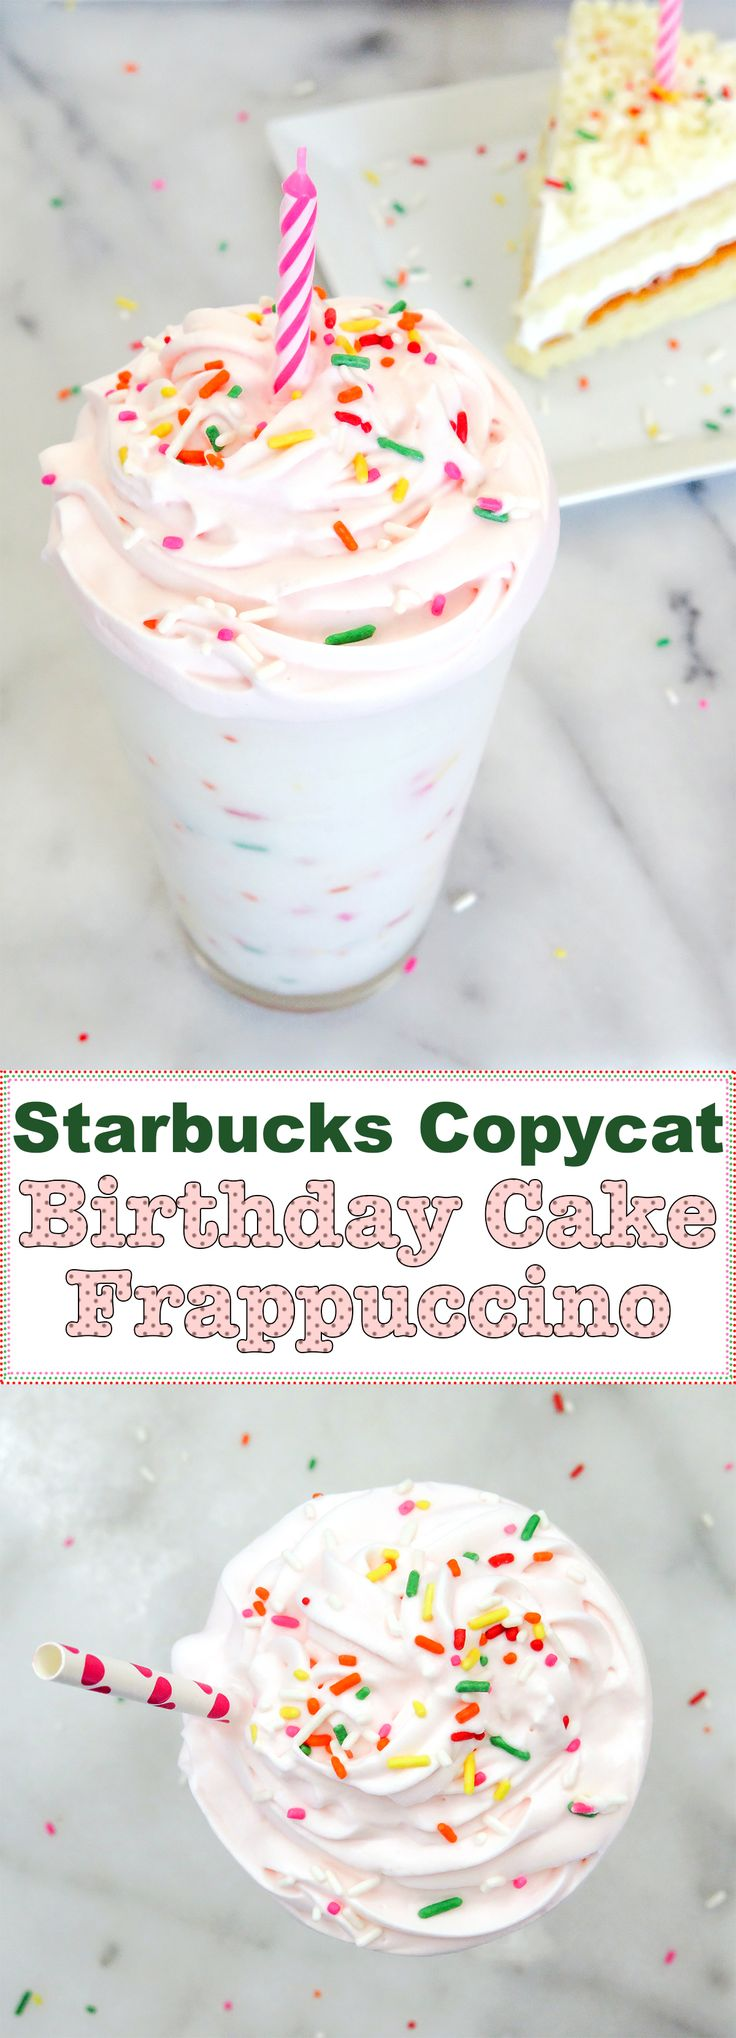 The Starbucks Copycat Birthday Cake Frappuccino mixes vanilla and hazelnut and is topped with a raspberry whipped cream. Have it anytime since it's caffeine-free!